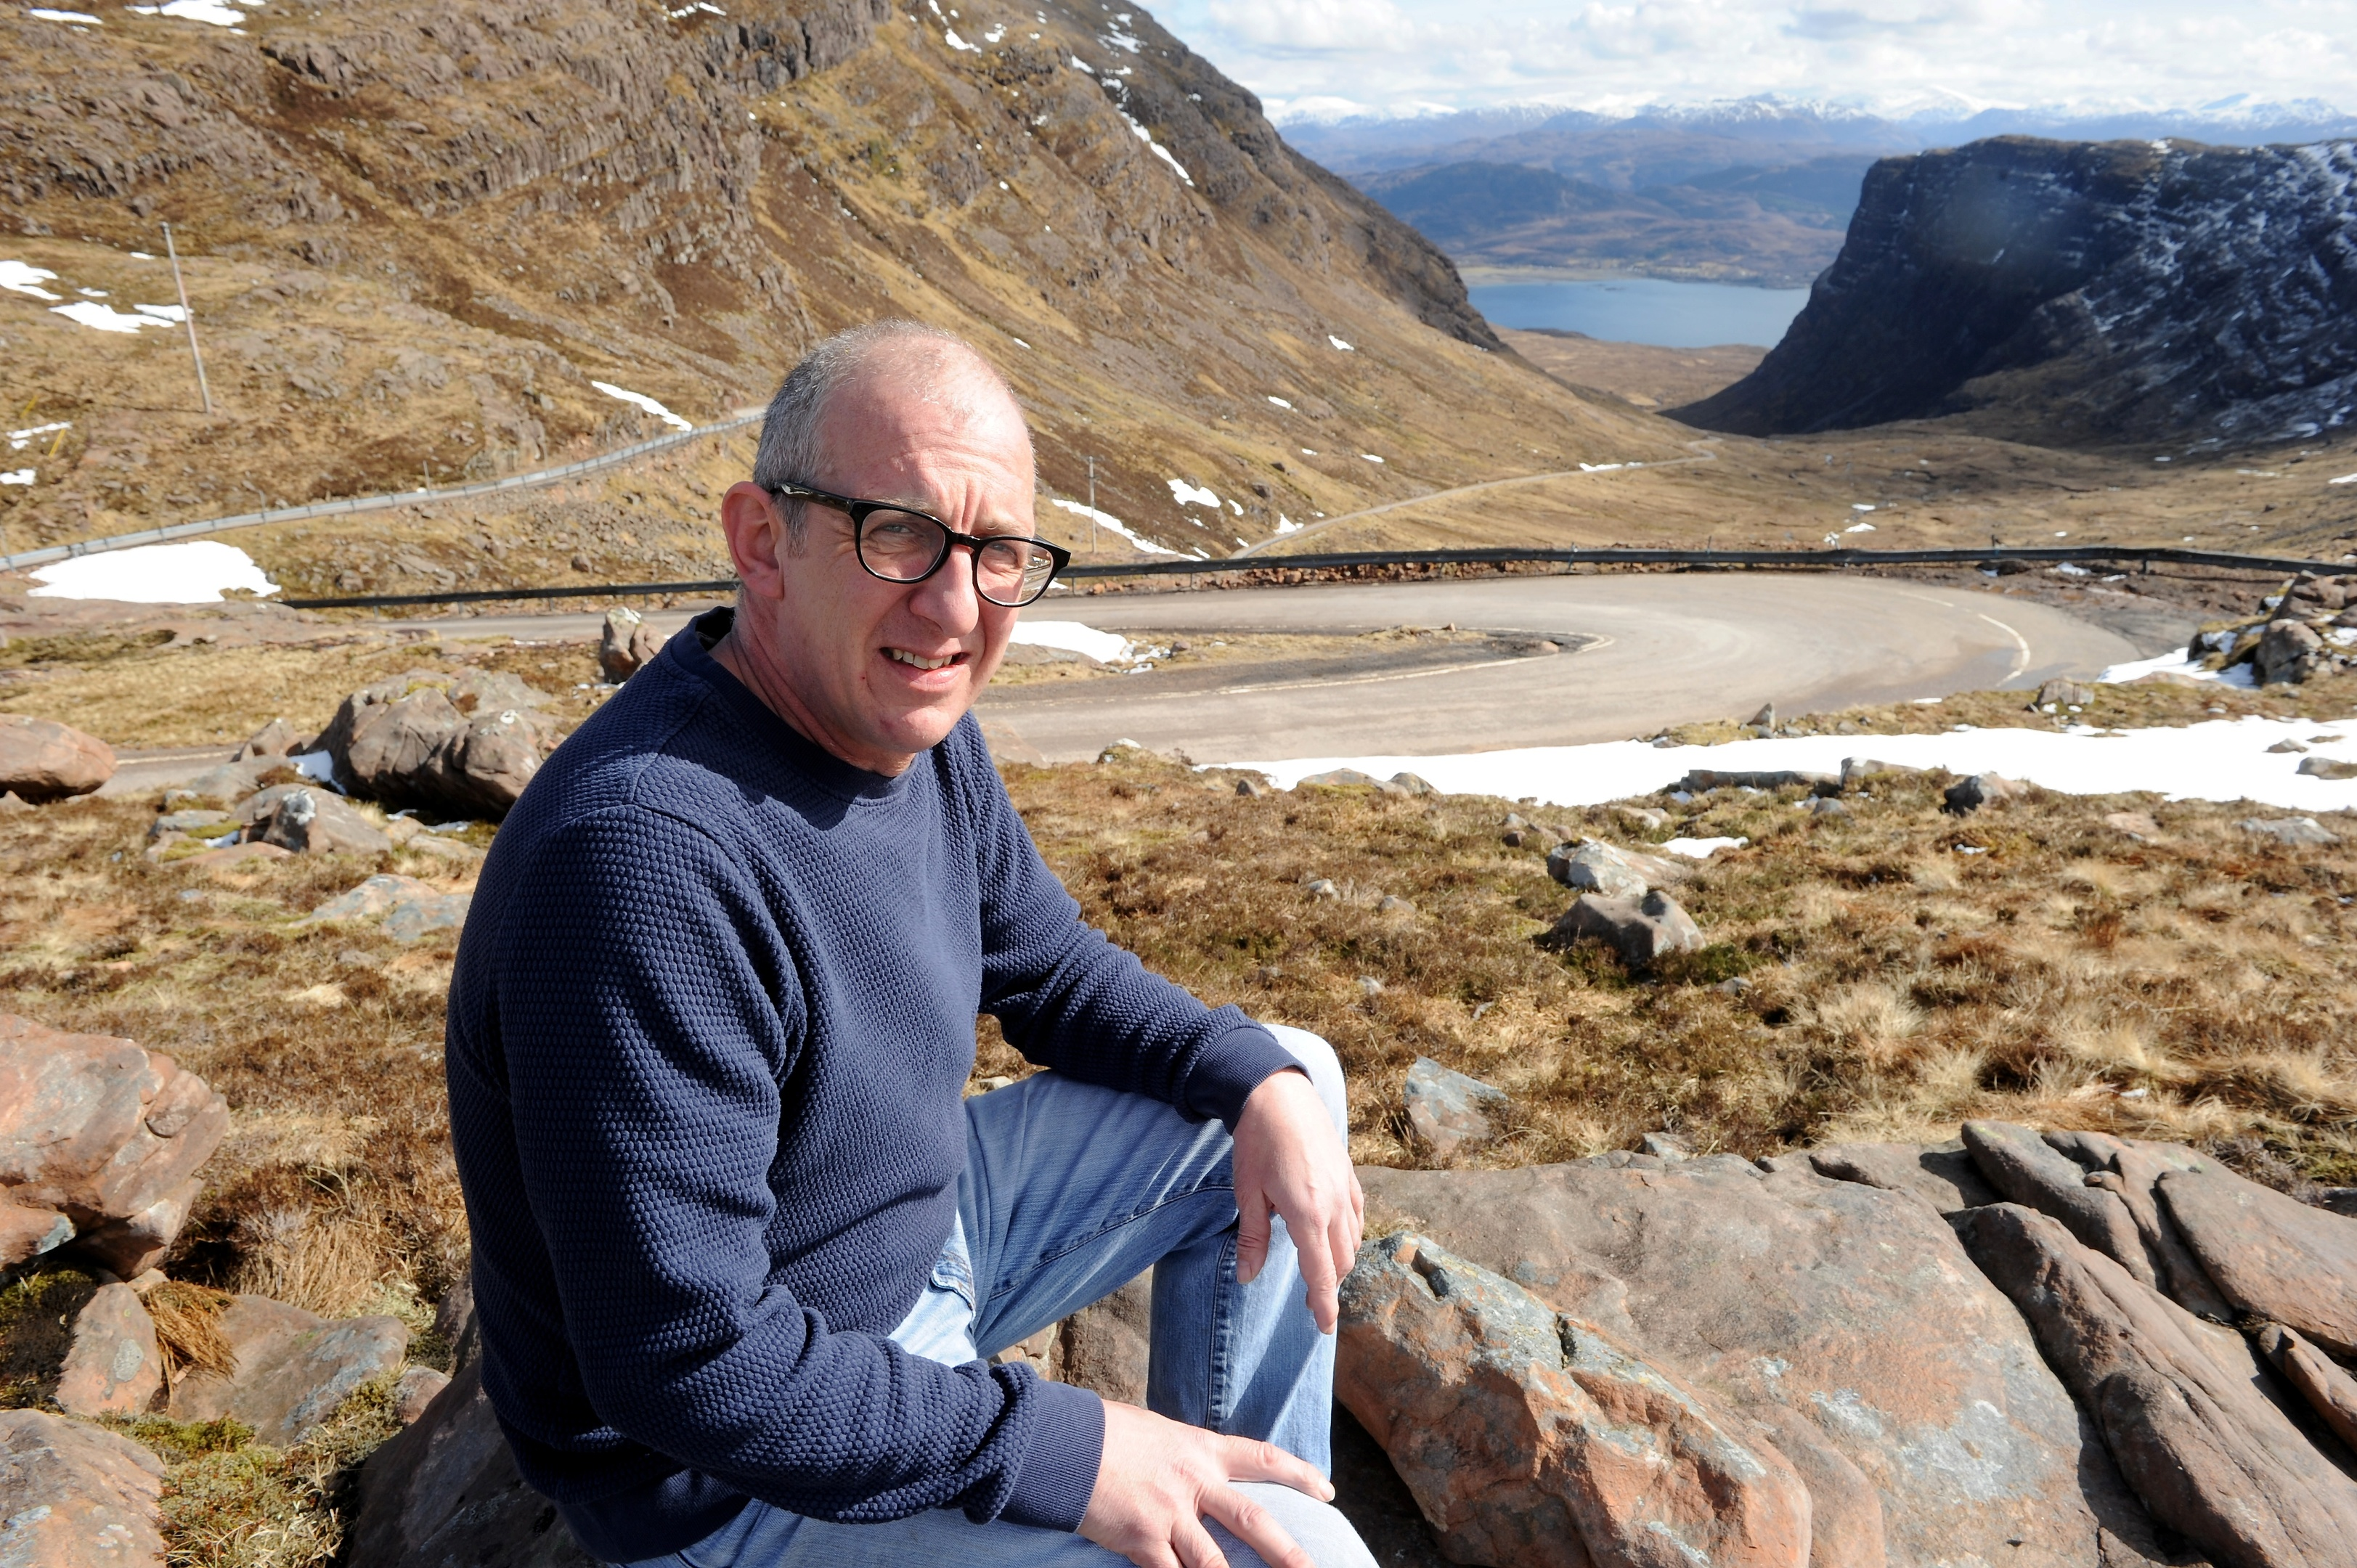 John Glovere, Chairman of the Applecross Community Council, at the summit of the Bealach nam Ba.